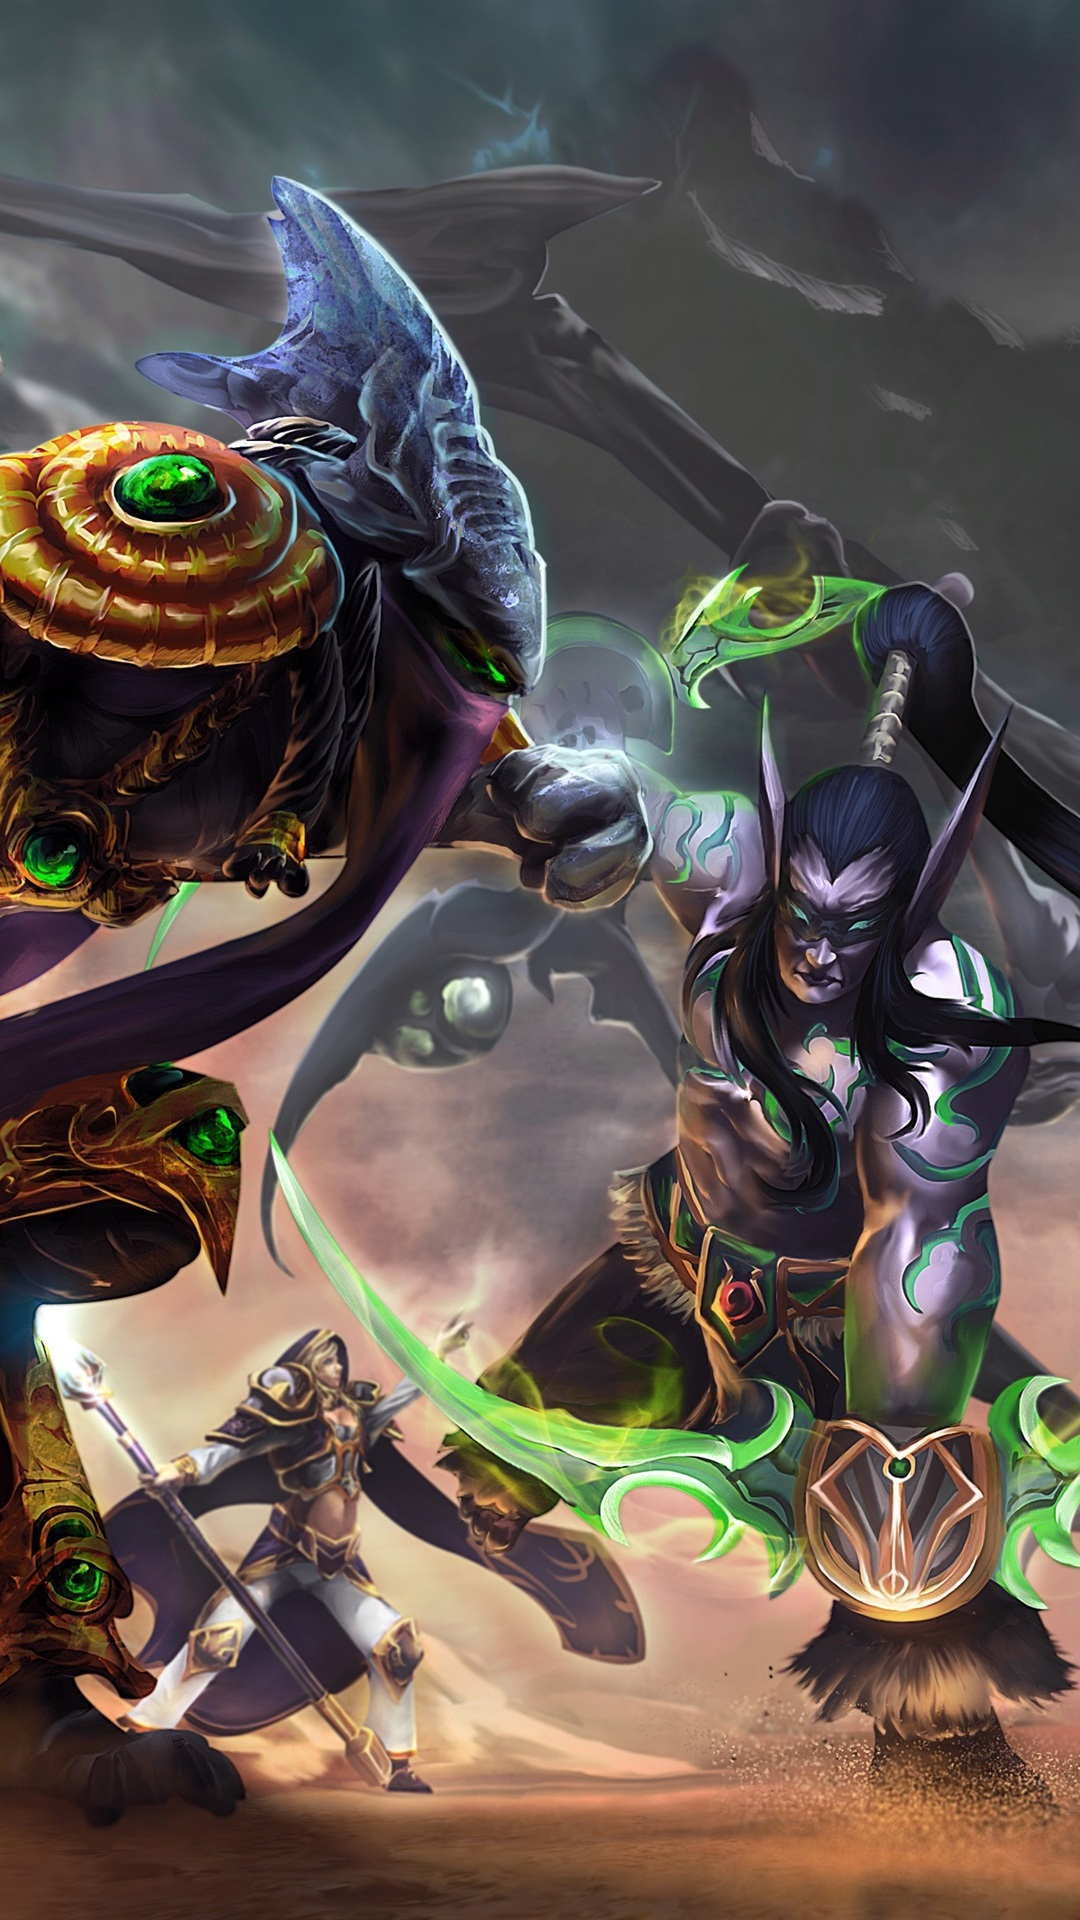 Heroes Of The Storm Art Picture 1080x1920 Iphone 8 7 6 6s Plus